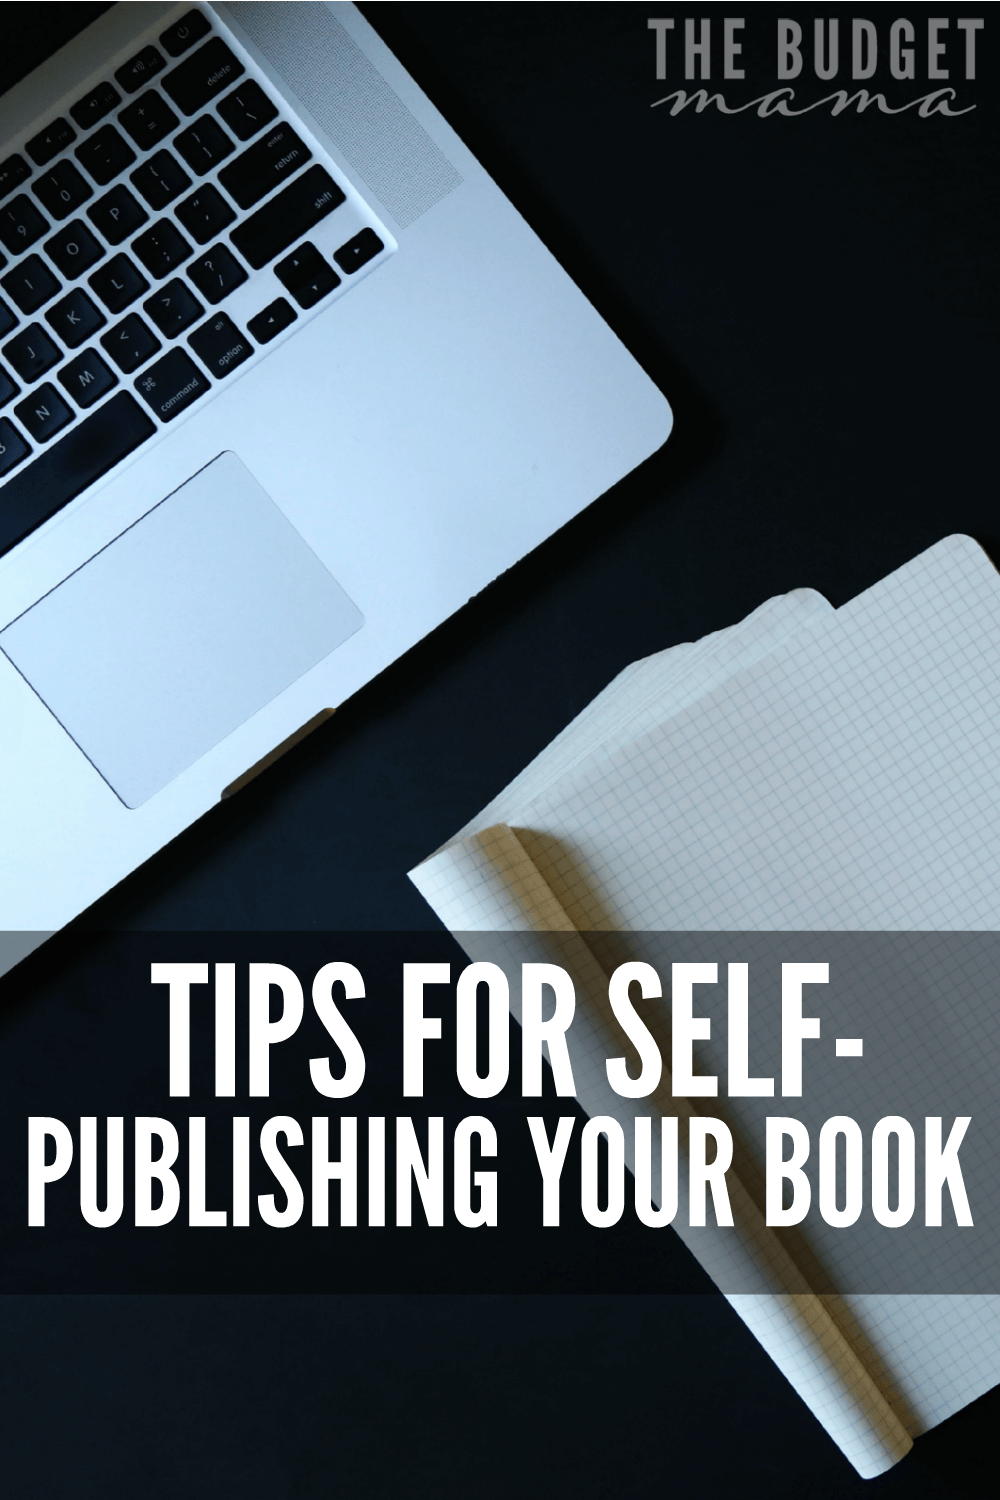 Question on publishing a book?